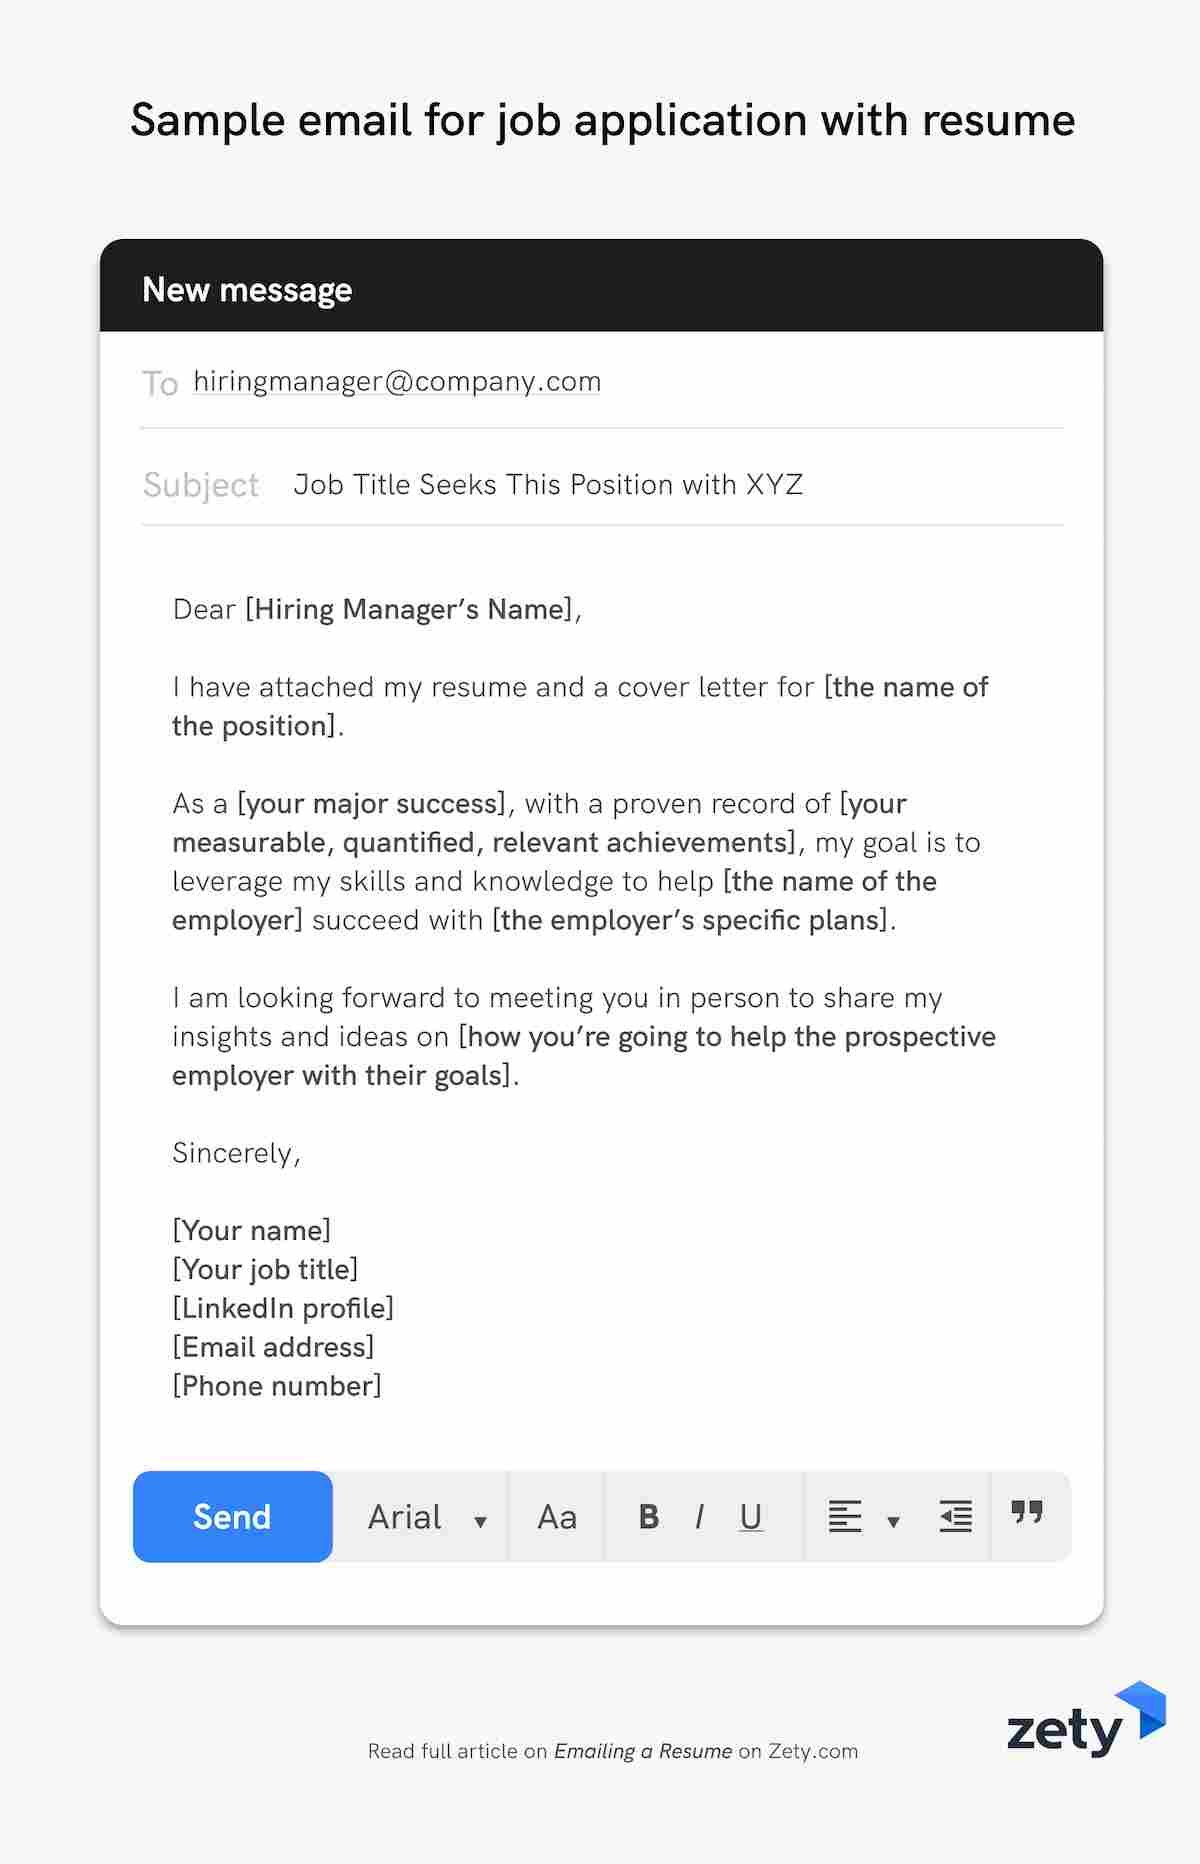 emailing resume job application email samples appropriate address for sample with Resume Appropriate Email Address For Resume